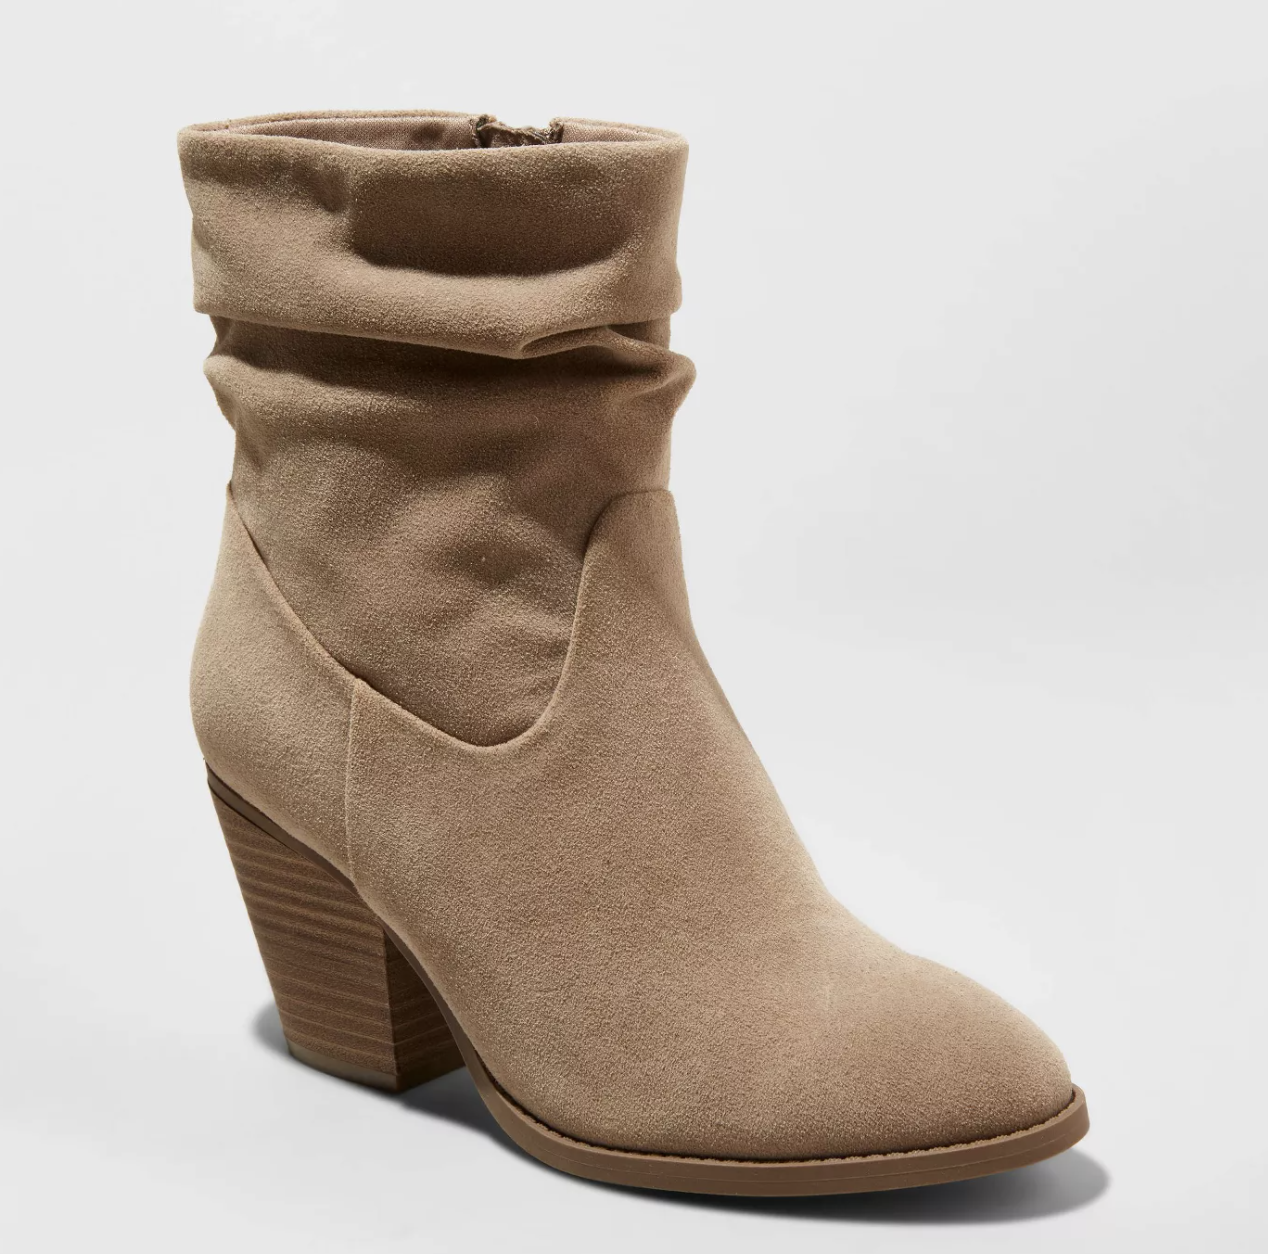 taupe colored slouchy boots with a stacked wooden heel